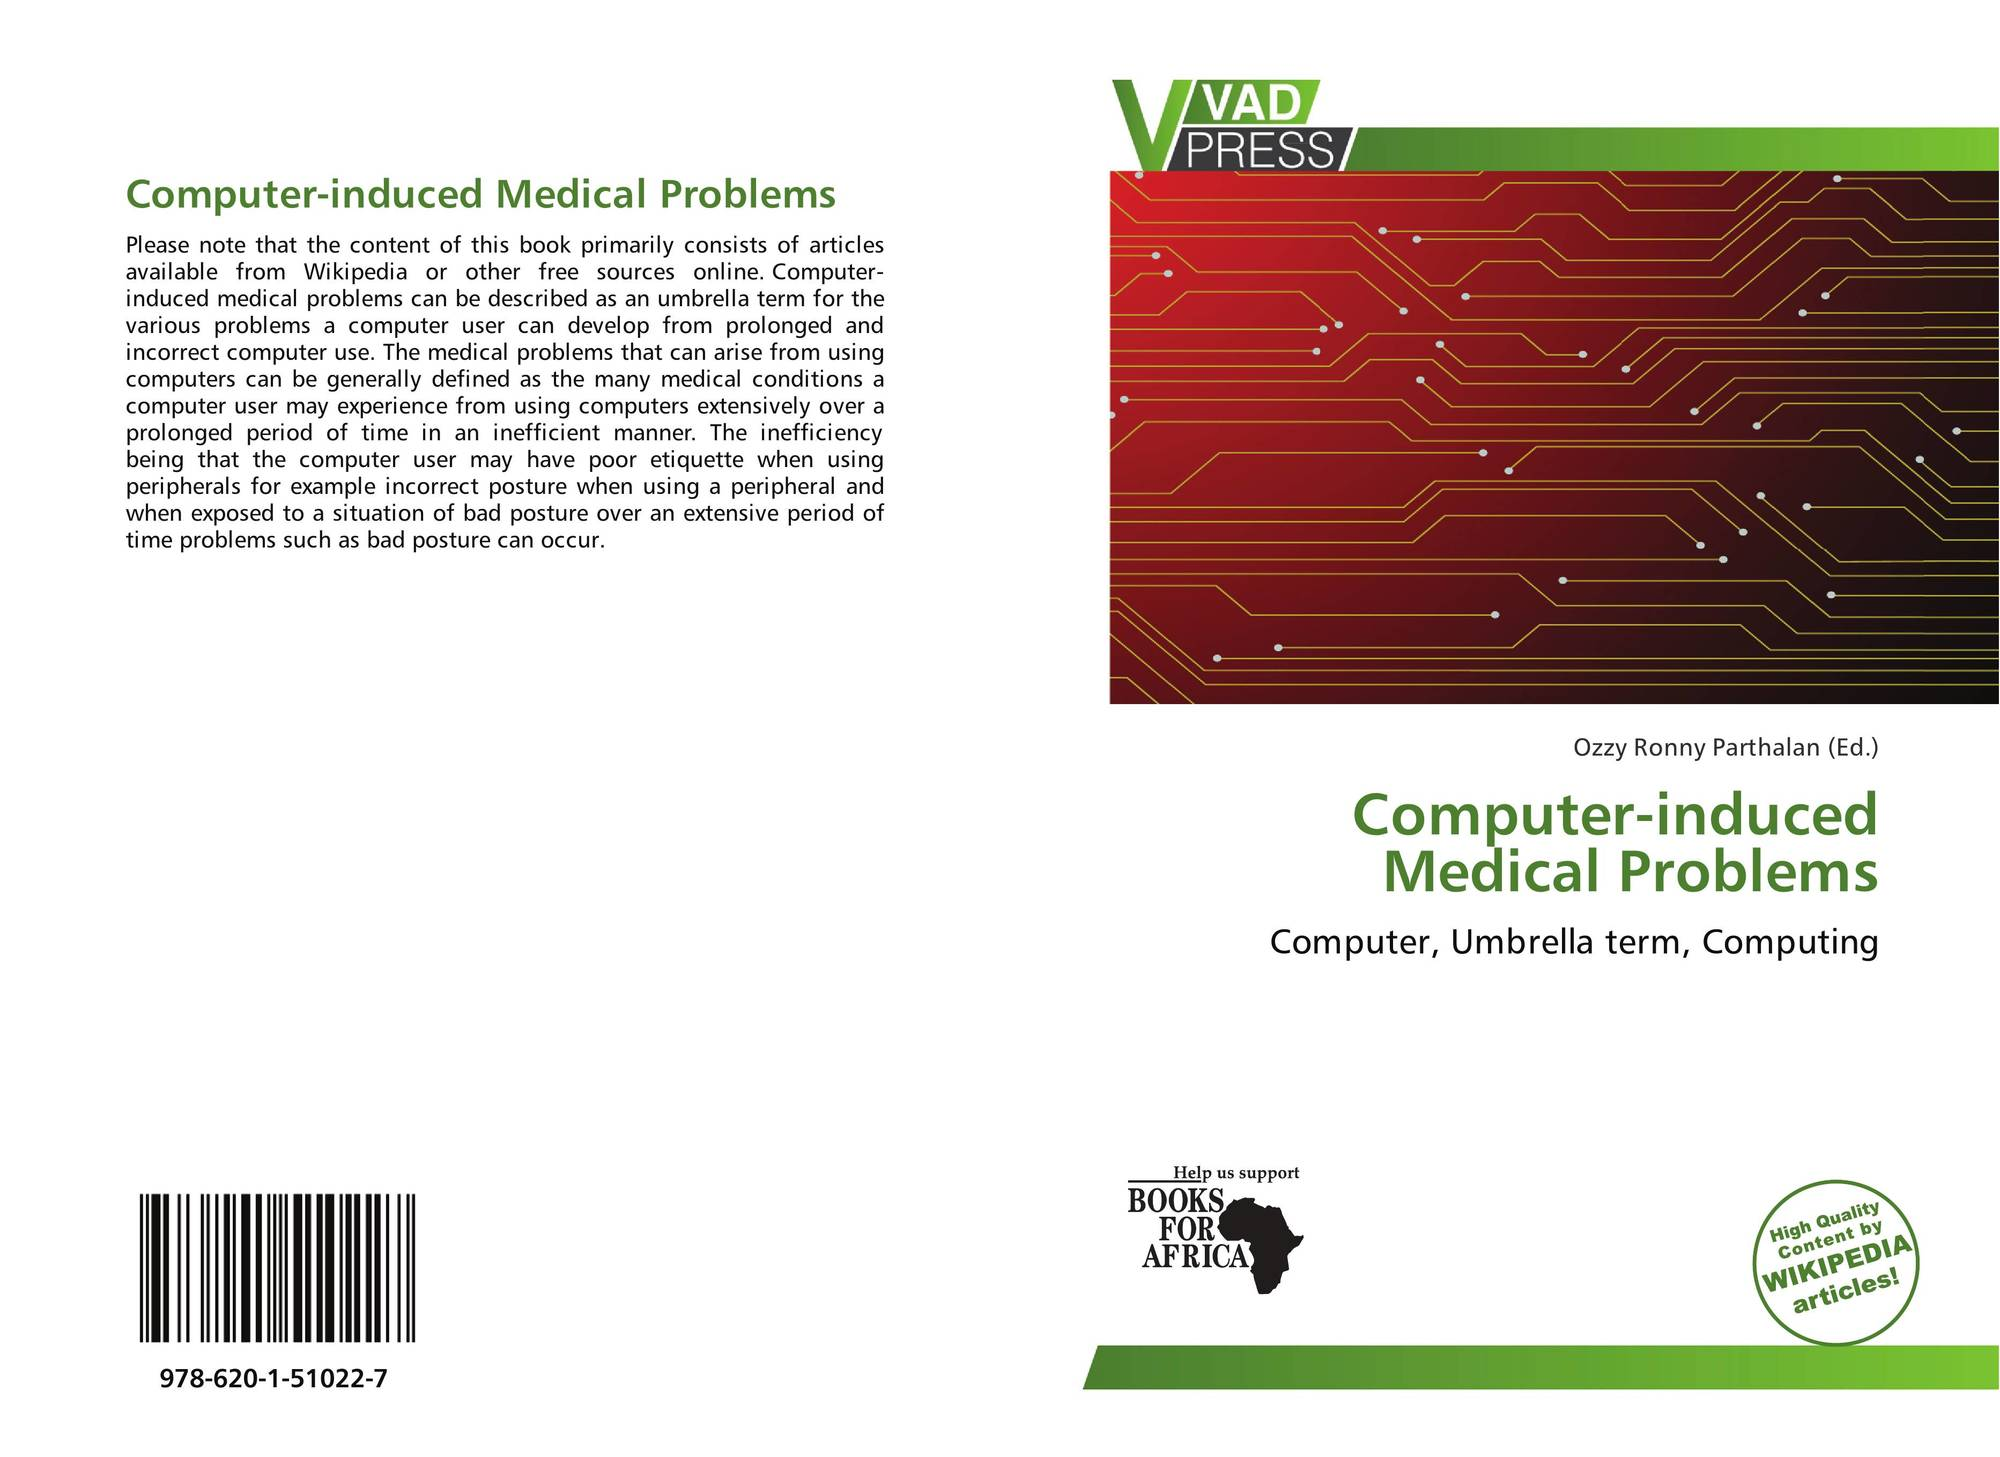 Computer-induced Medical Problems, 978-620-1-51022-7